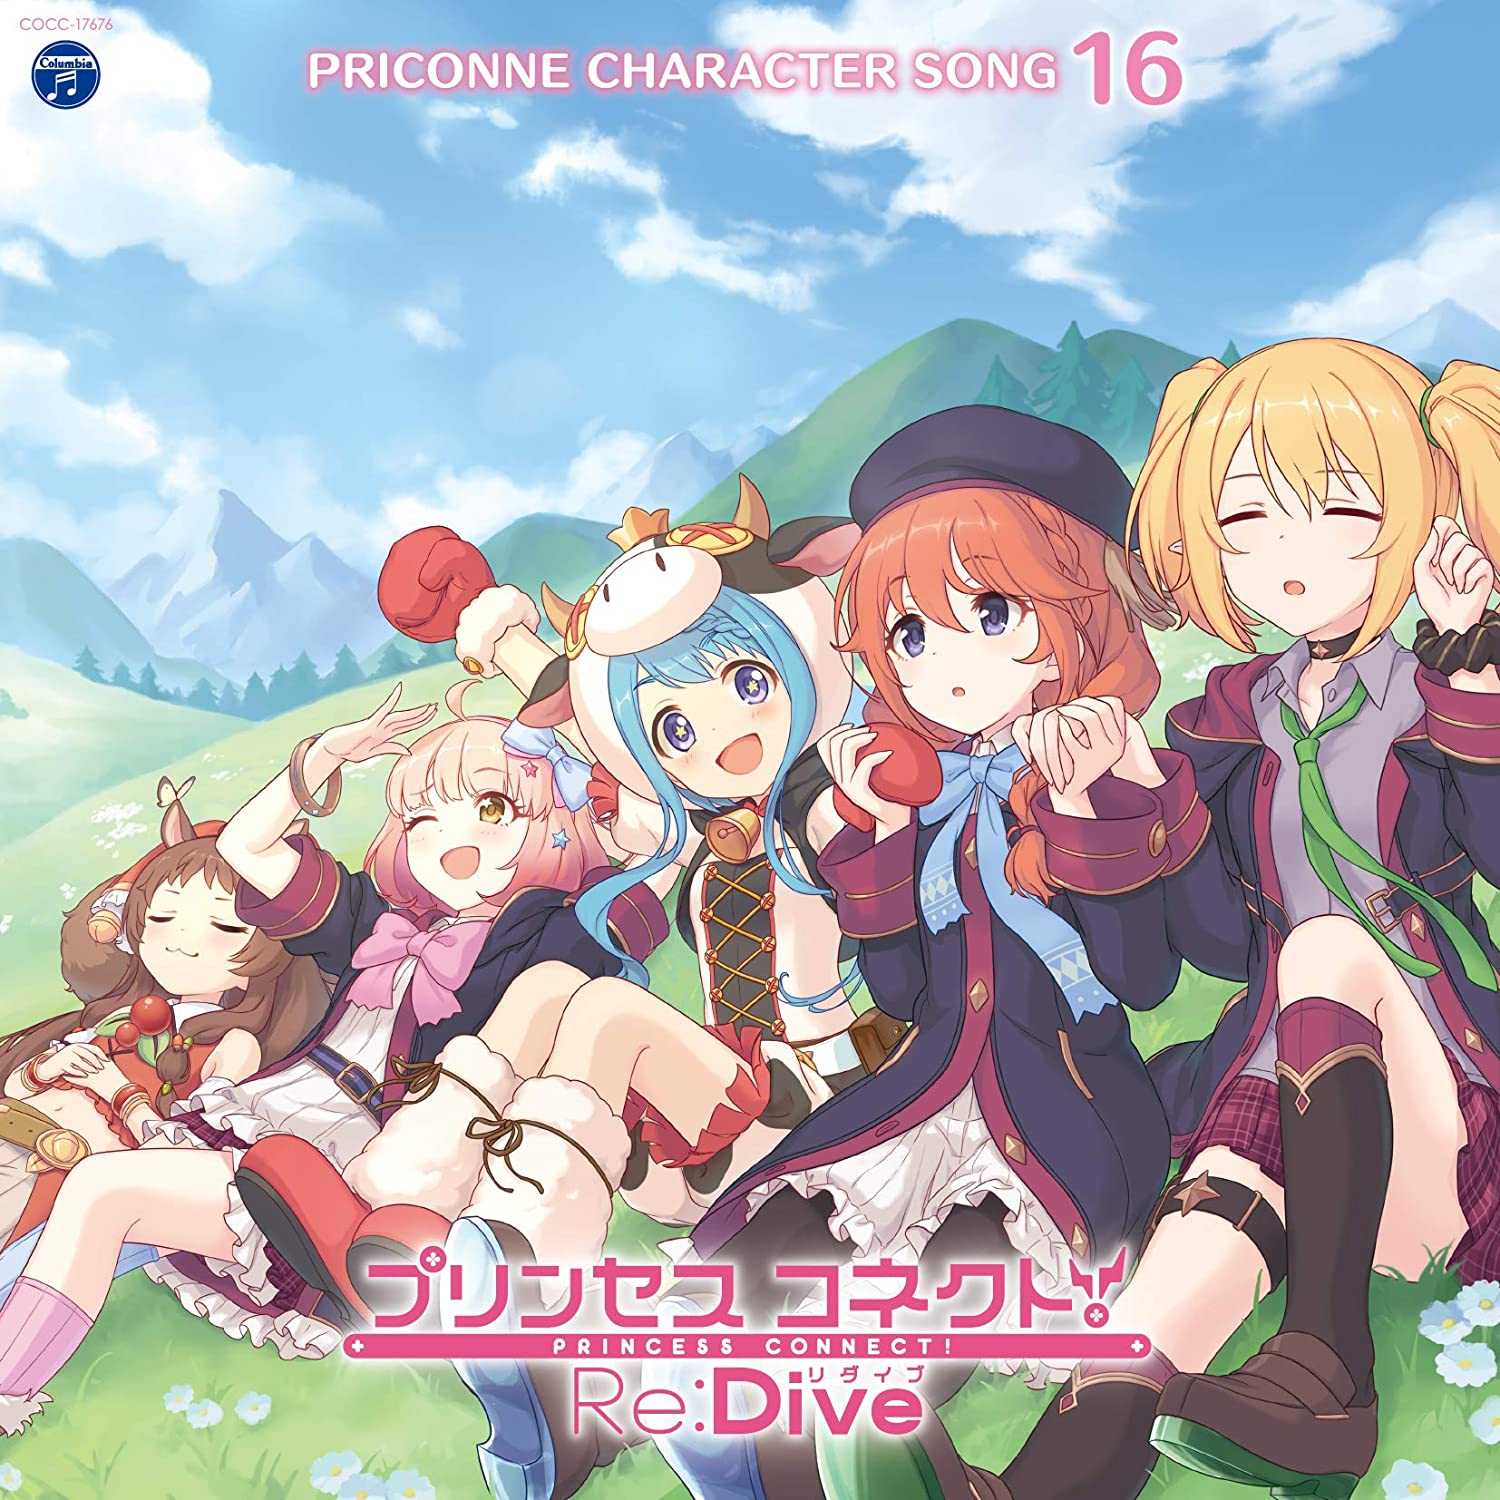 PRINCESS CONNECT! Re:Dive PRICONNE CHARACTER SONG 16     プリンセスコネクト! Re:Dive PRICONNE CHARACTER SONG 16